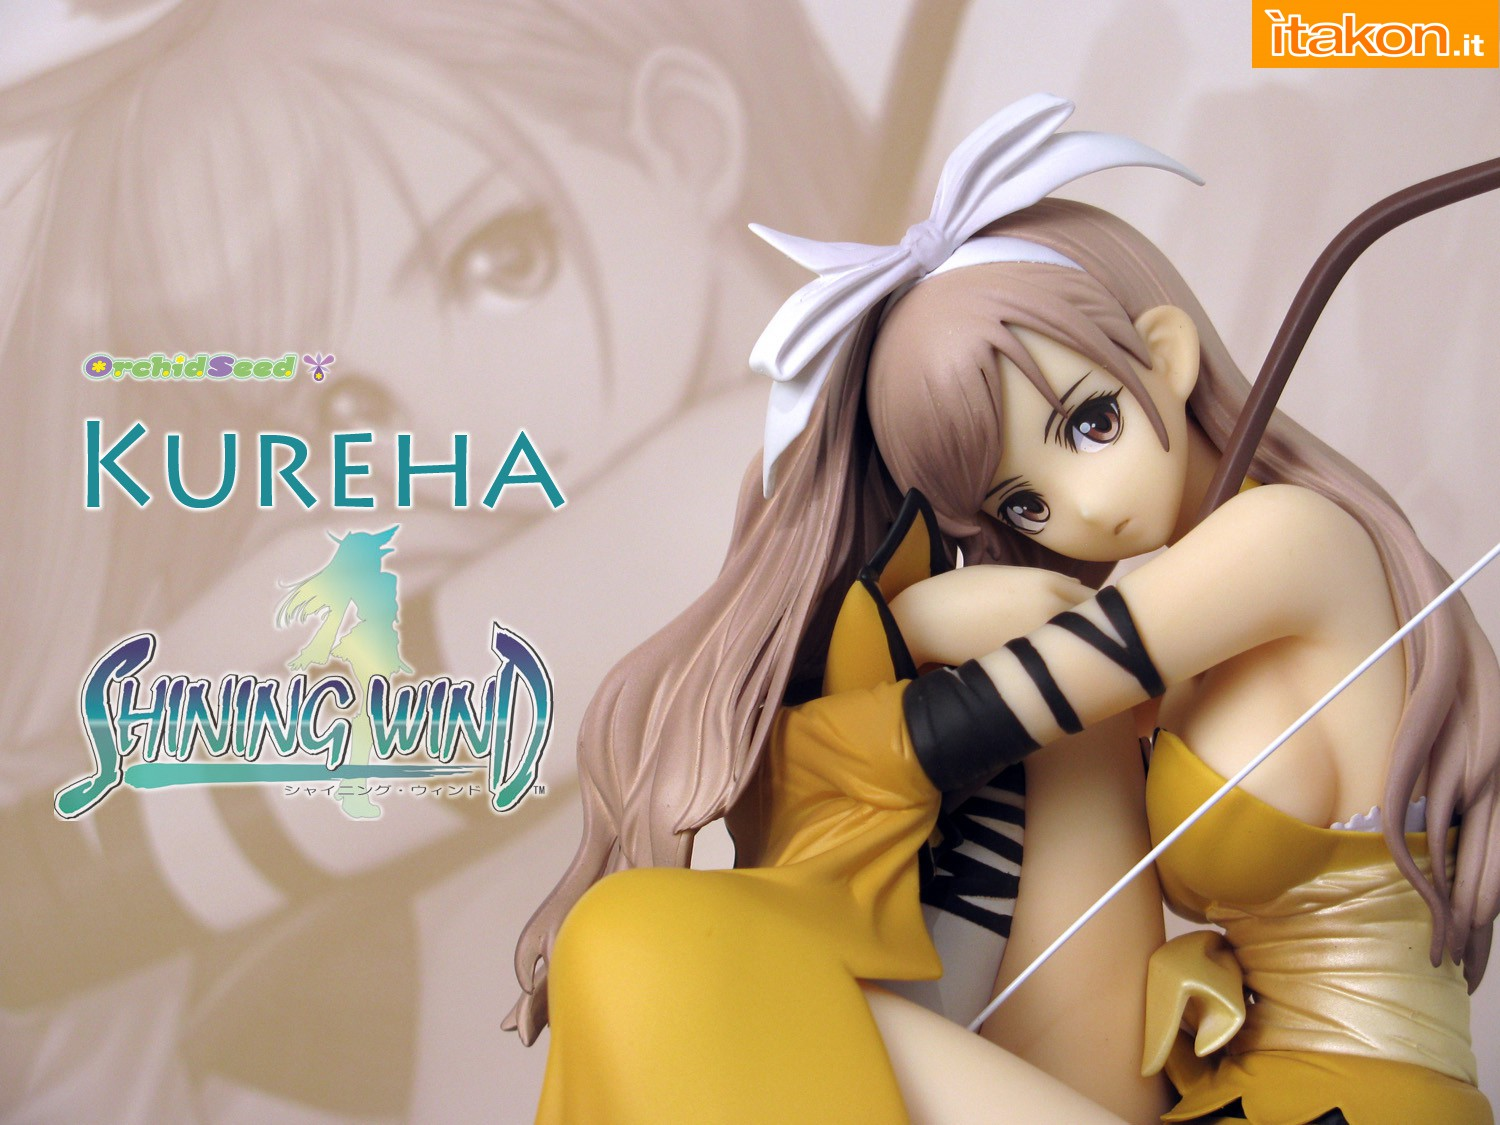 Link a 000 Kureha Shining Wind Orchid Seed Recensione